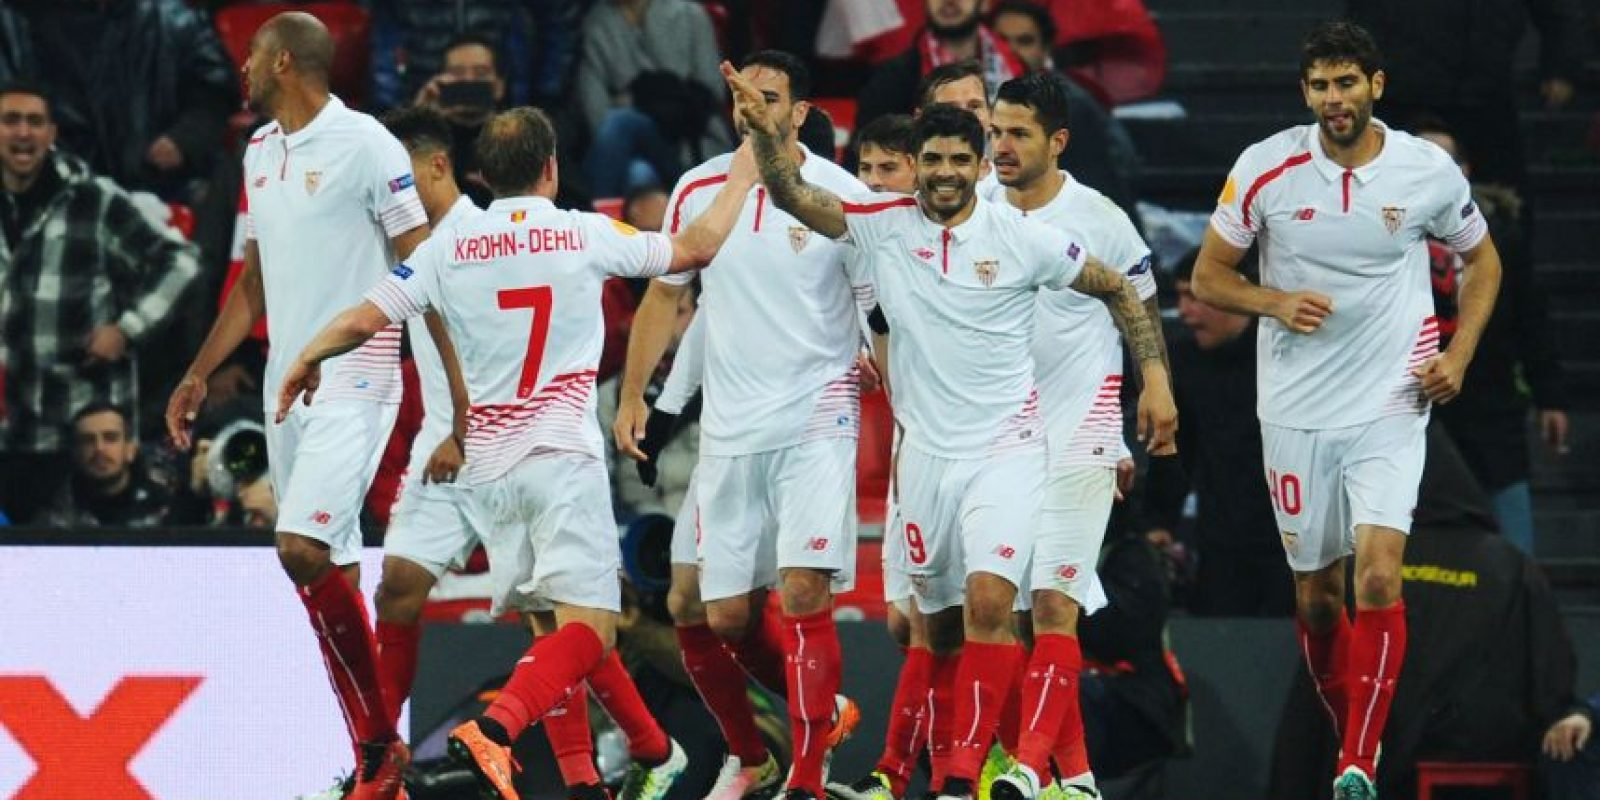 Sevilla vs. Shakhtar Donetsk Foto: Getty Images